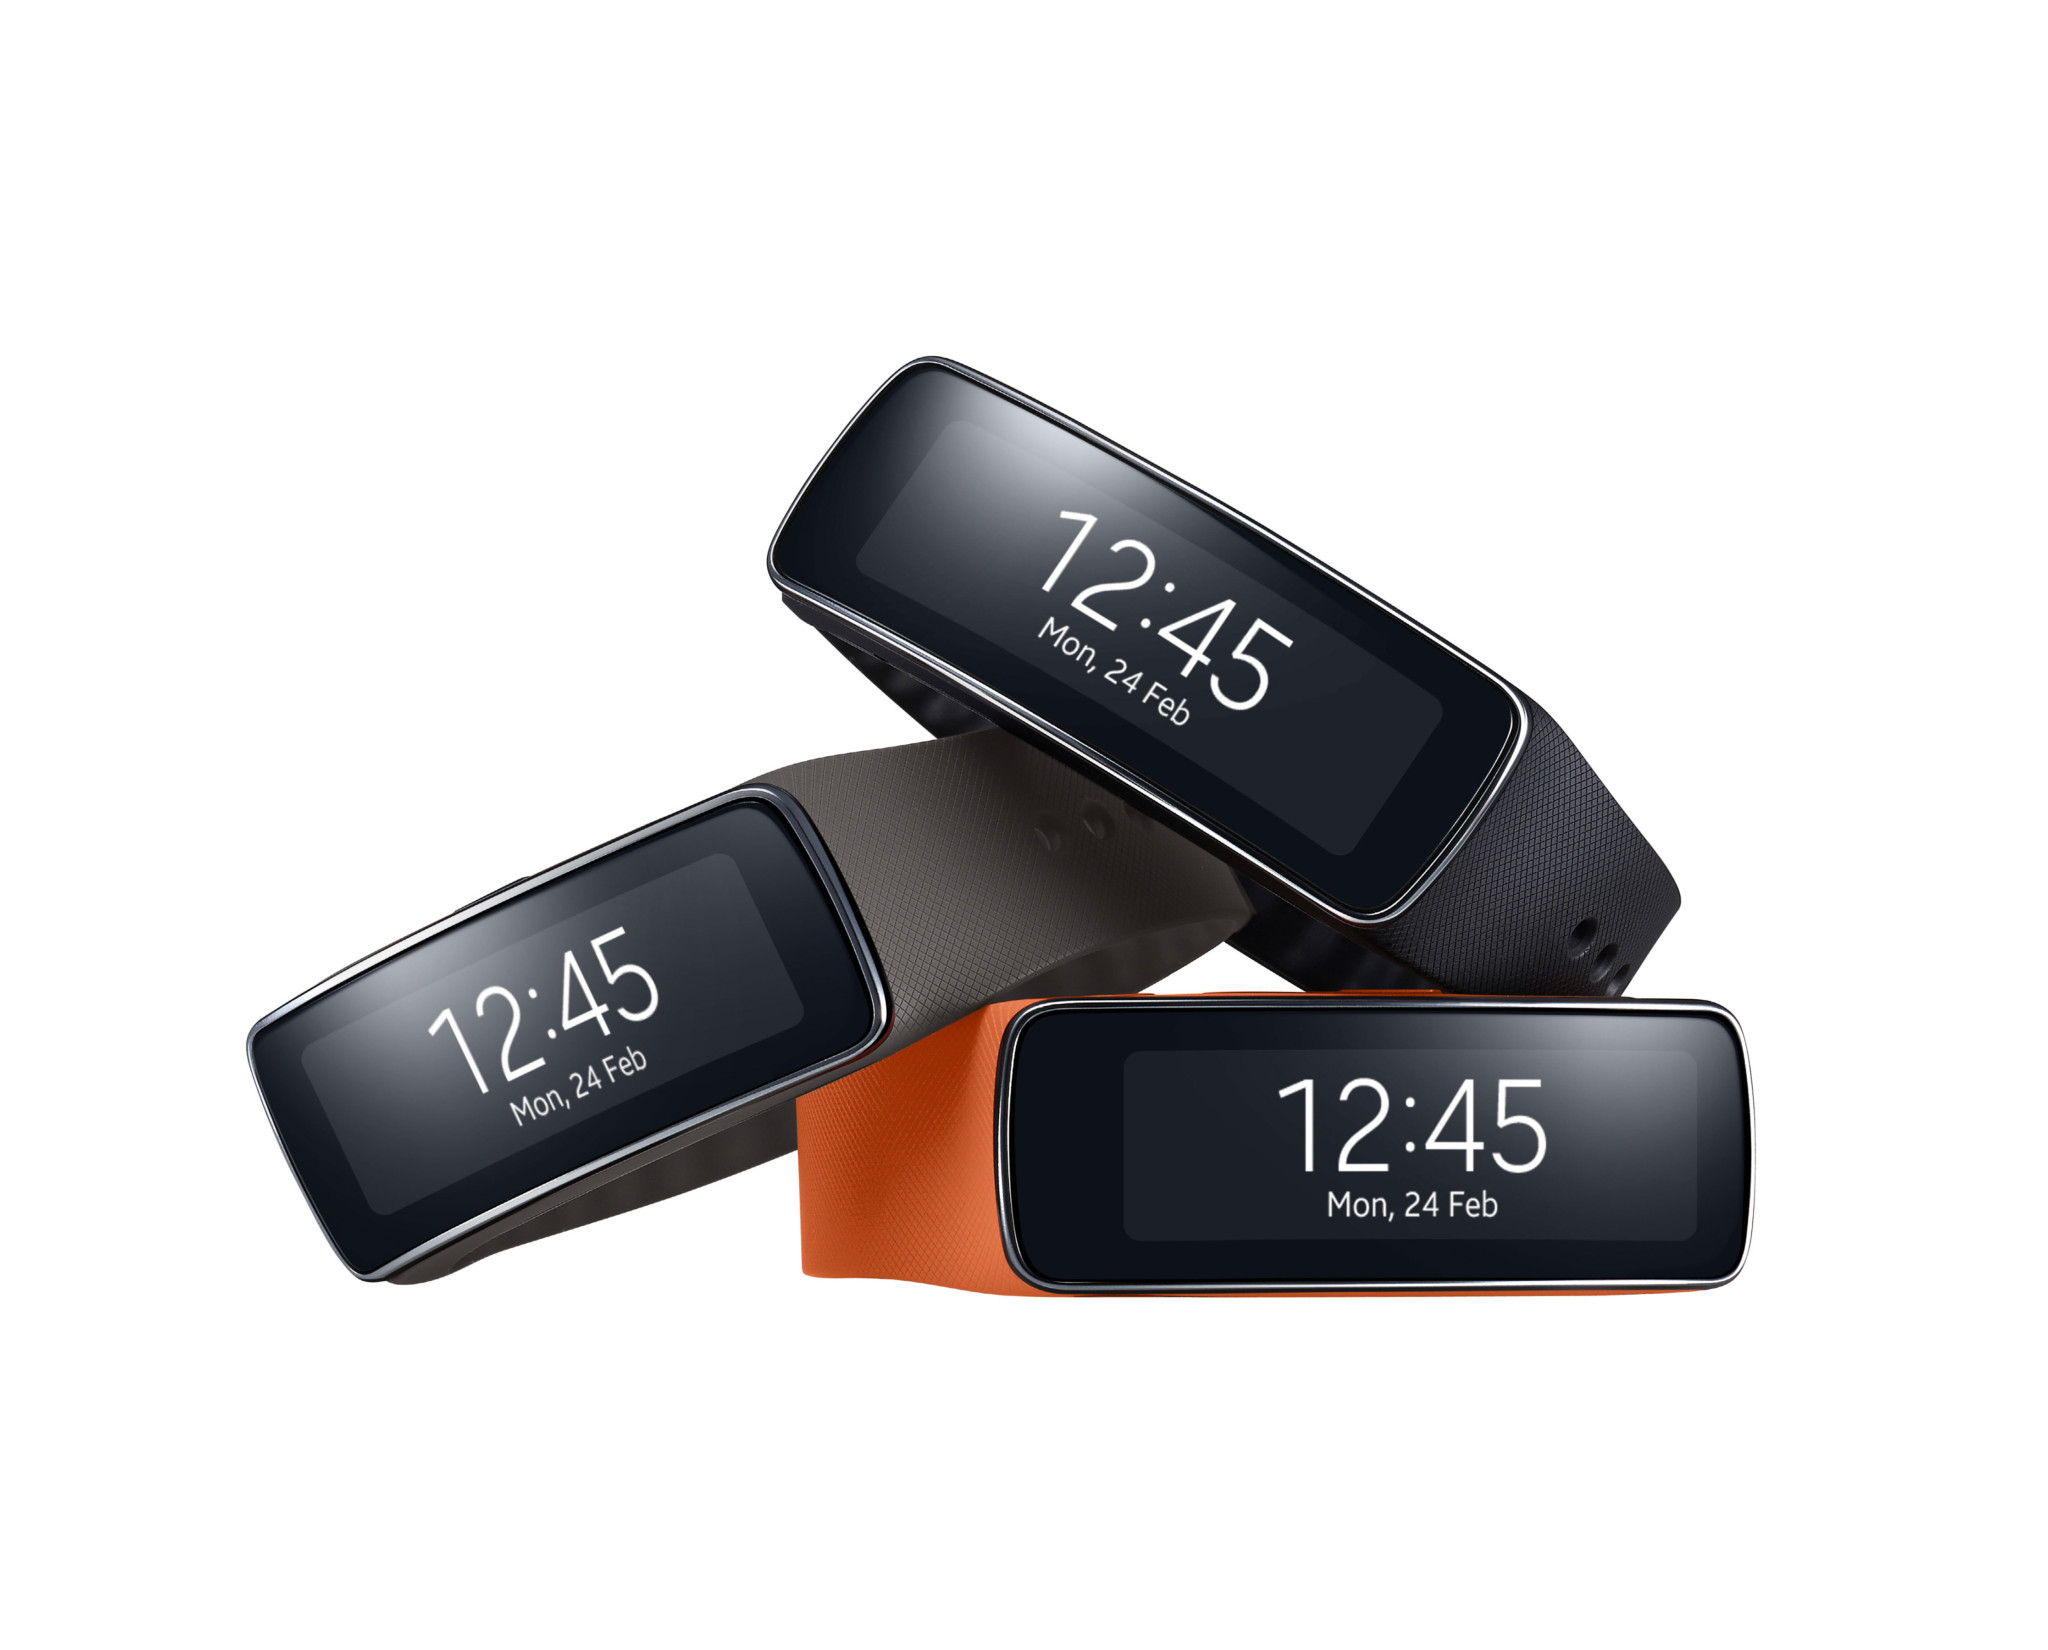 Samsung Gear Fit neobsahuje Android ani Tizen